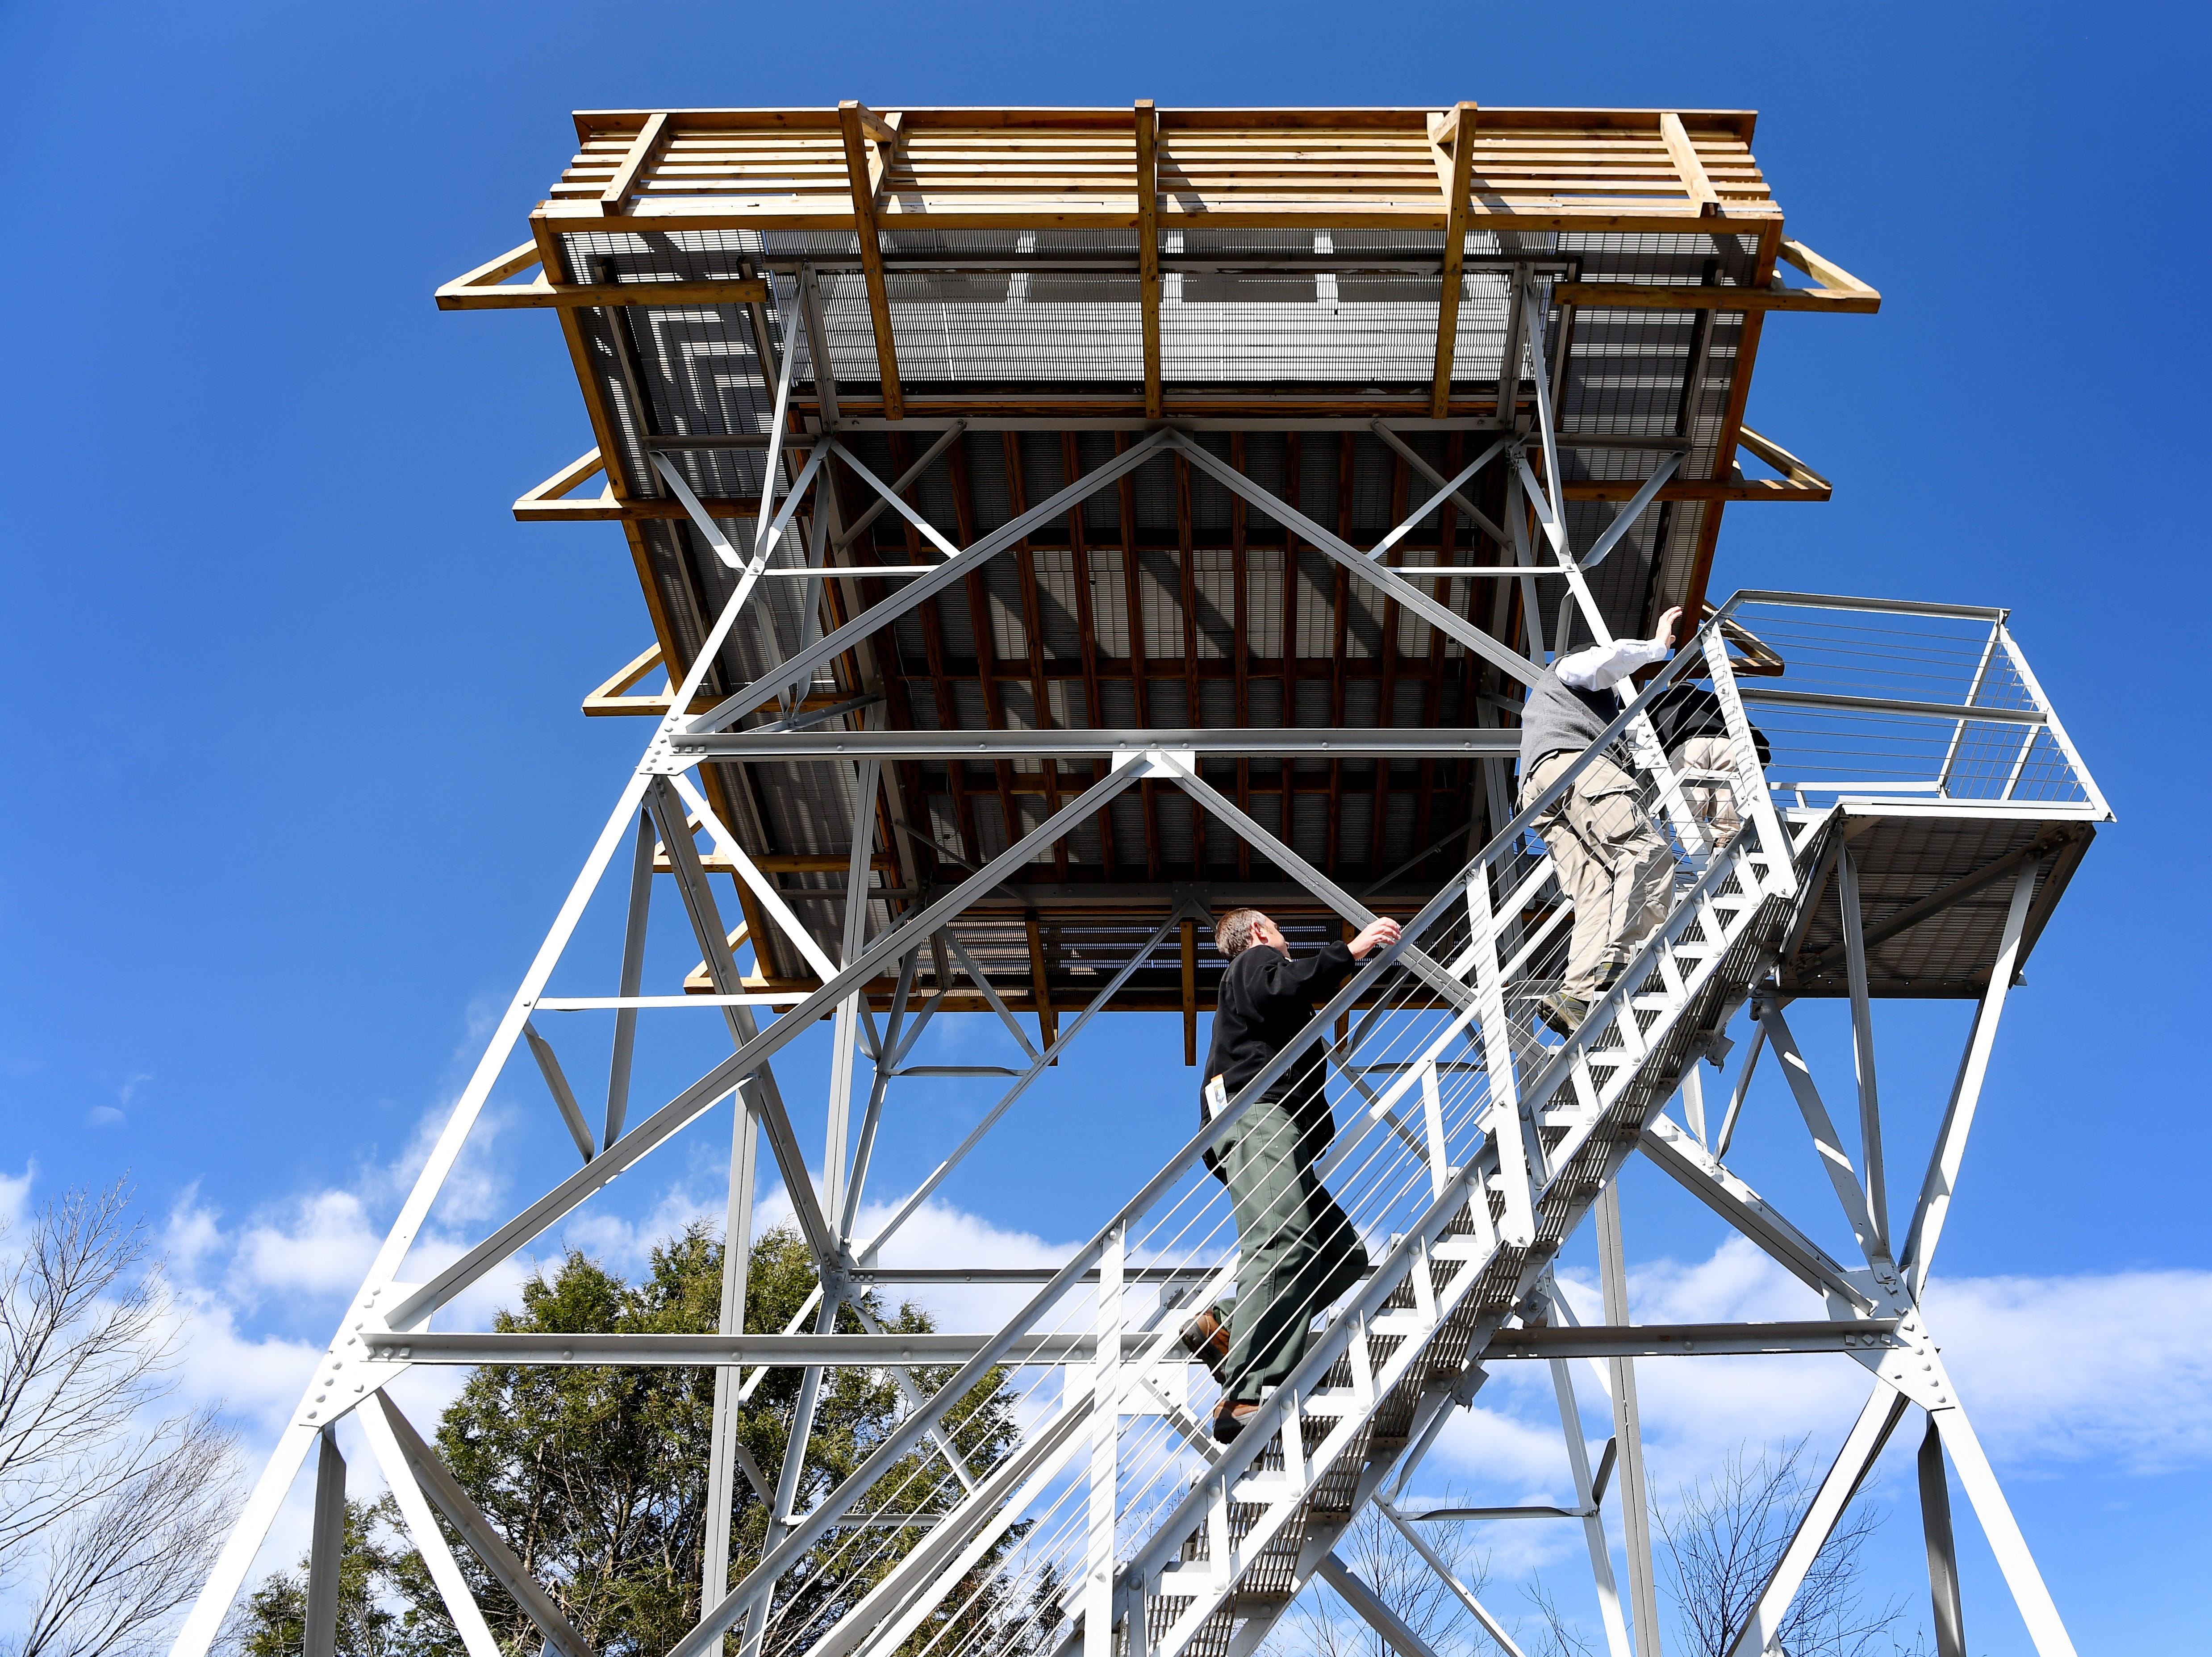 People ascend the stairs to see the view from the Rich Mountain lookout tower near Hot Springs Nov. 19, 2018.